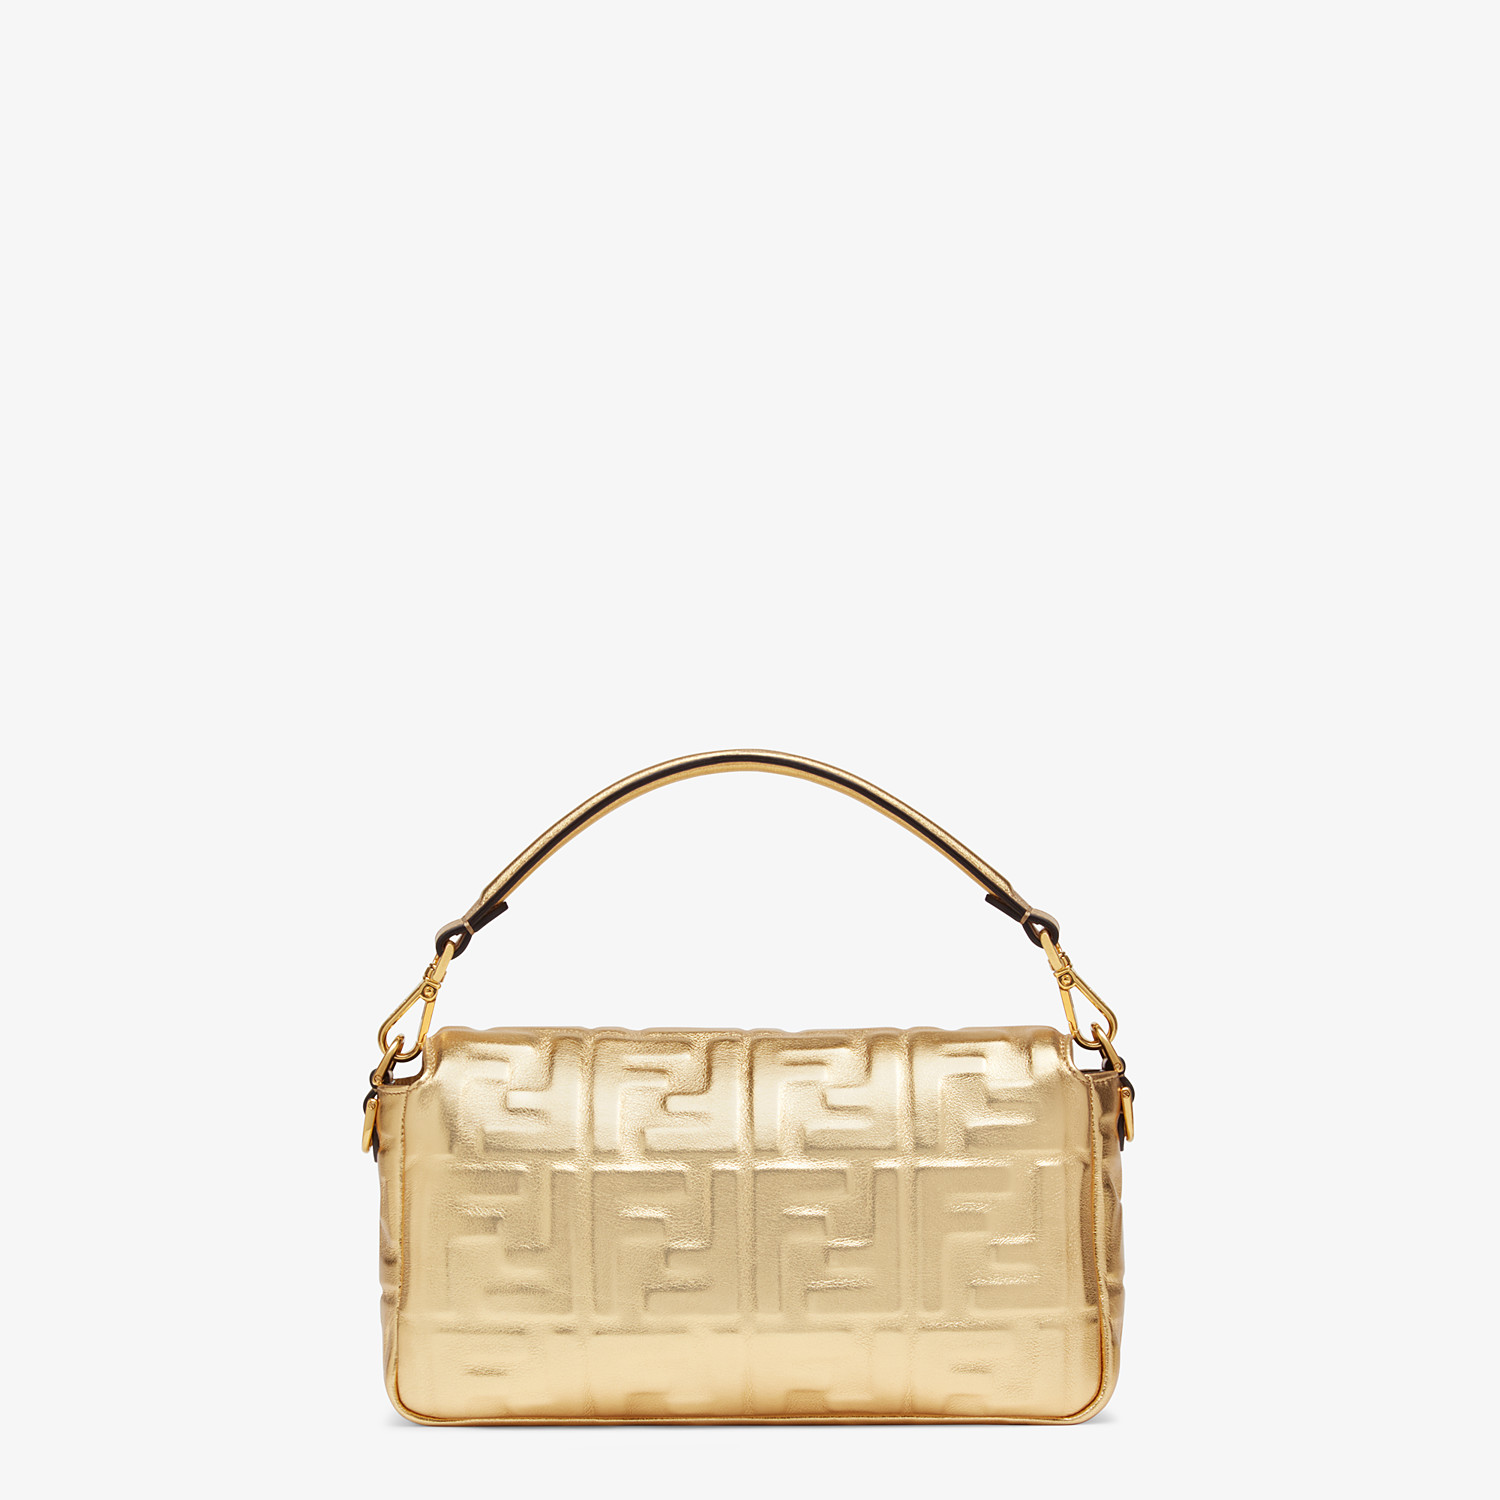 FENDI BAGUETTE - Golden leather bag - view 4 detail